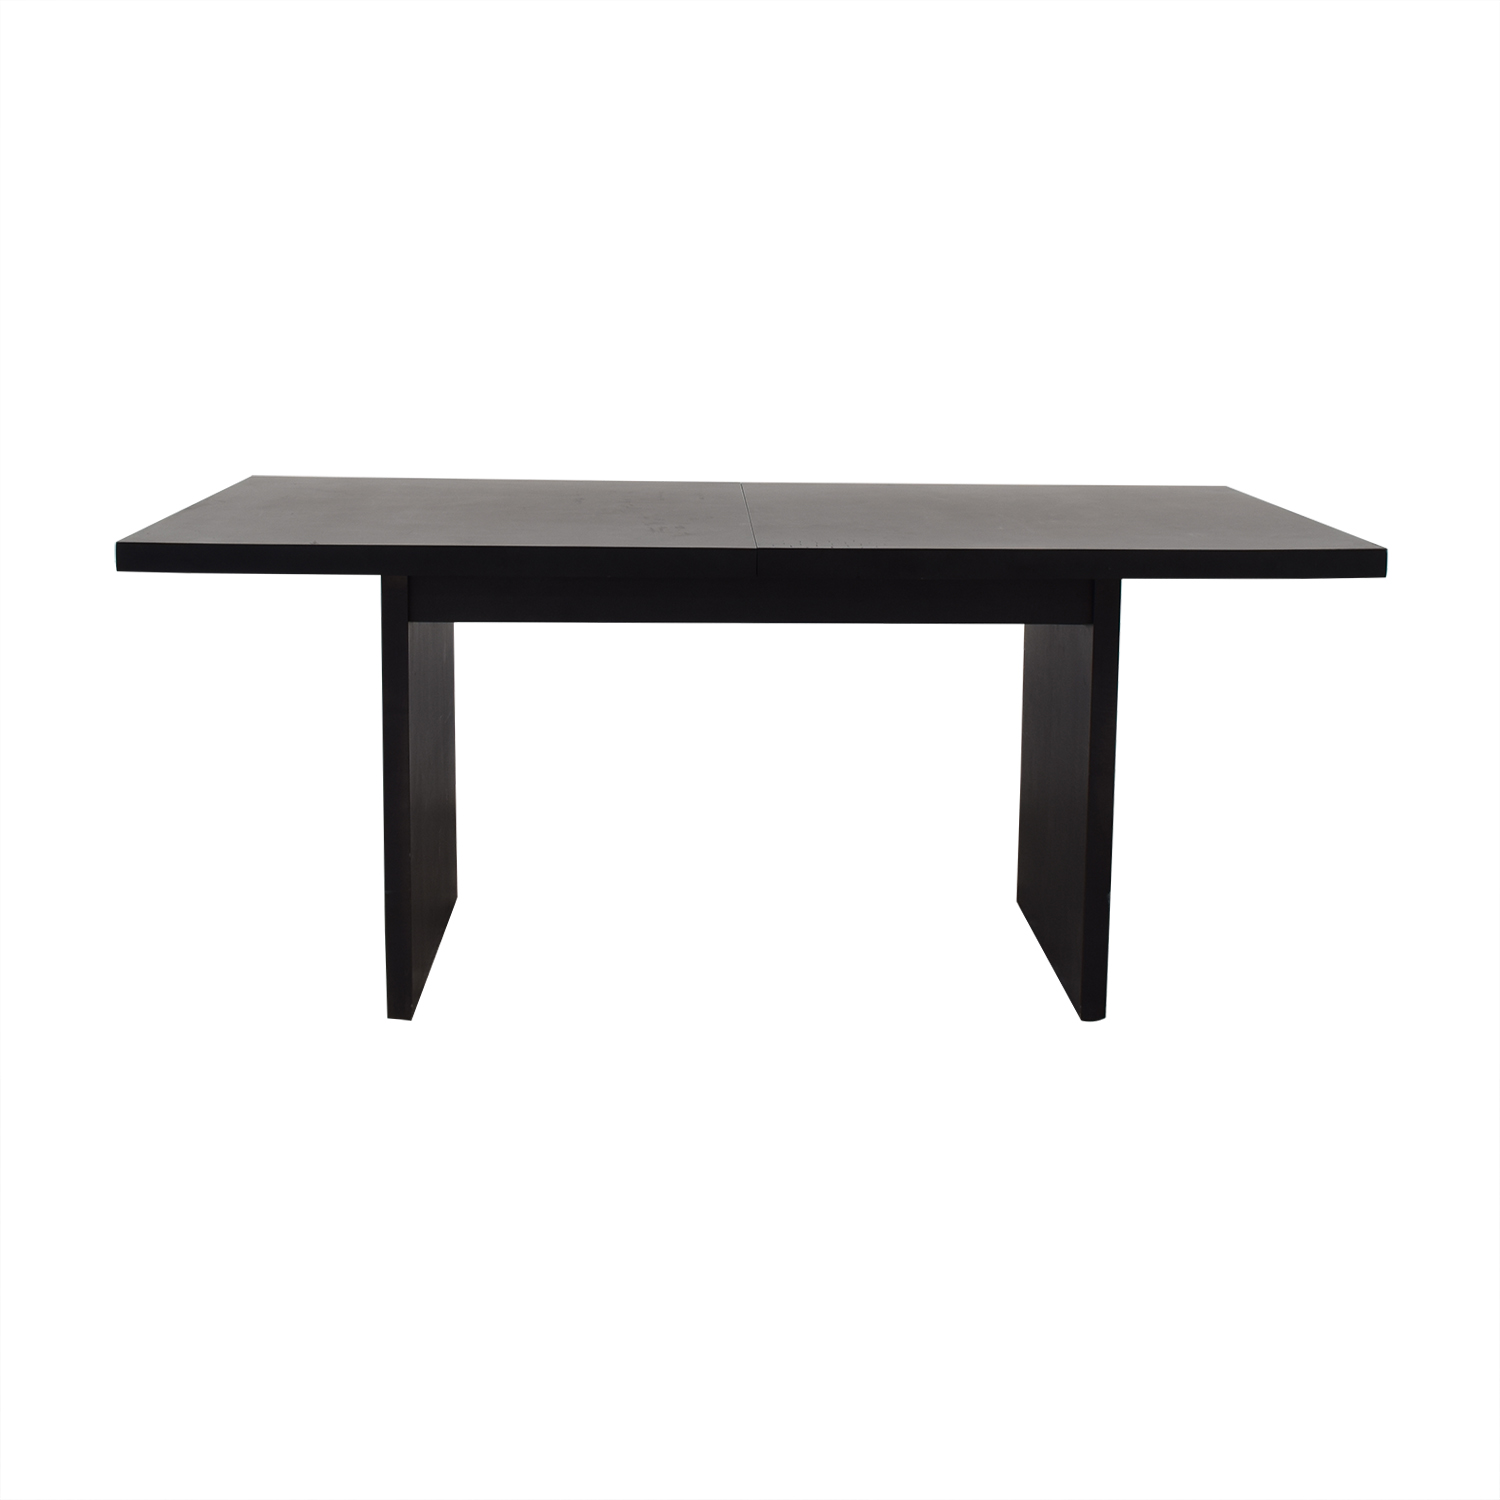 Room & Board Room & Board Corbett Extension Table on sale